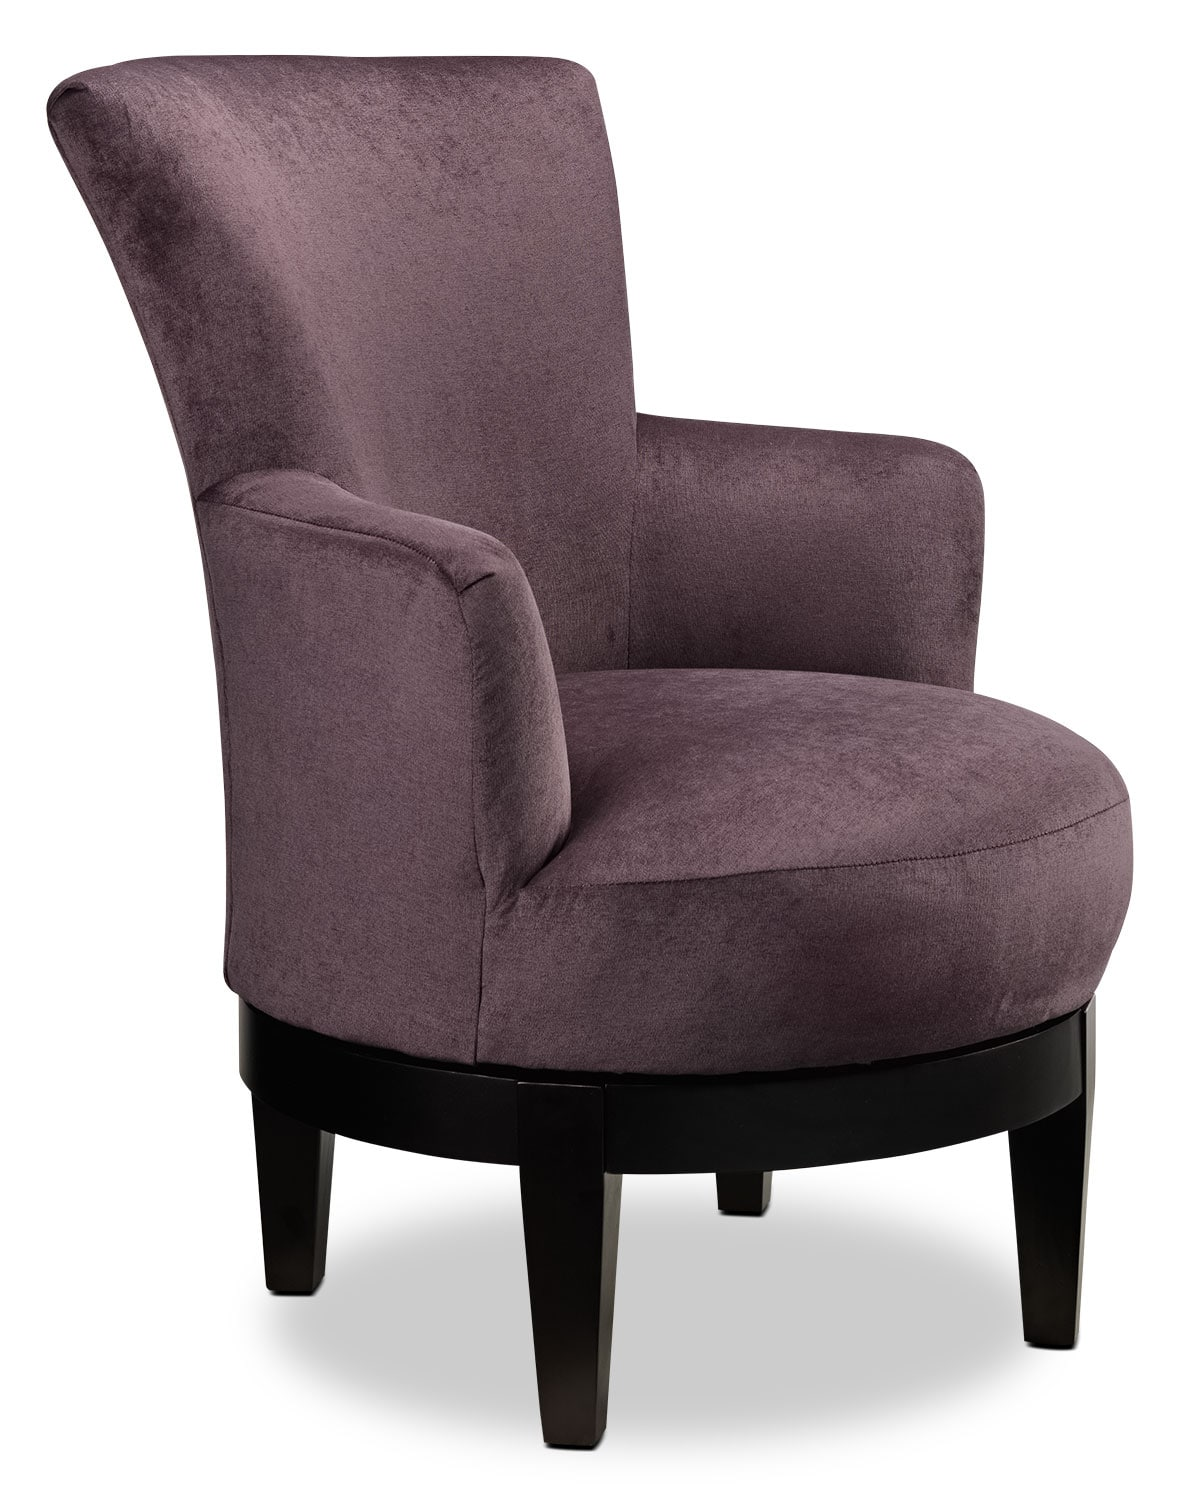 Justine Accent Chair - Plum